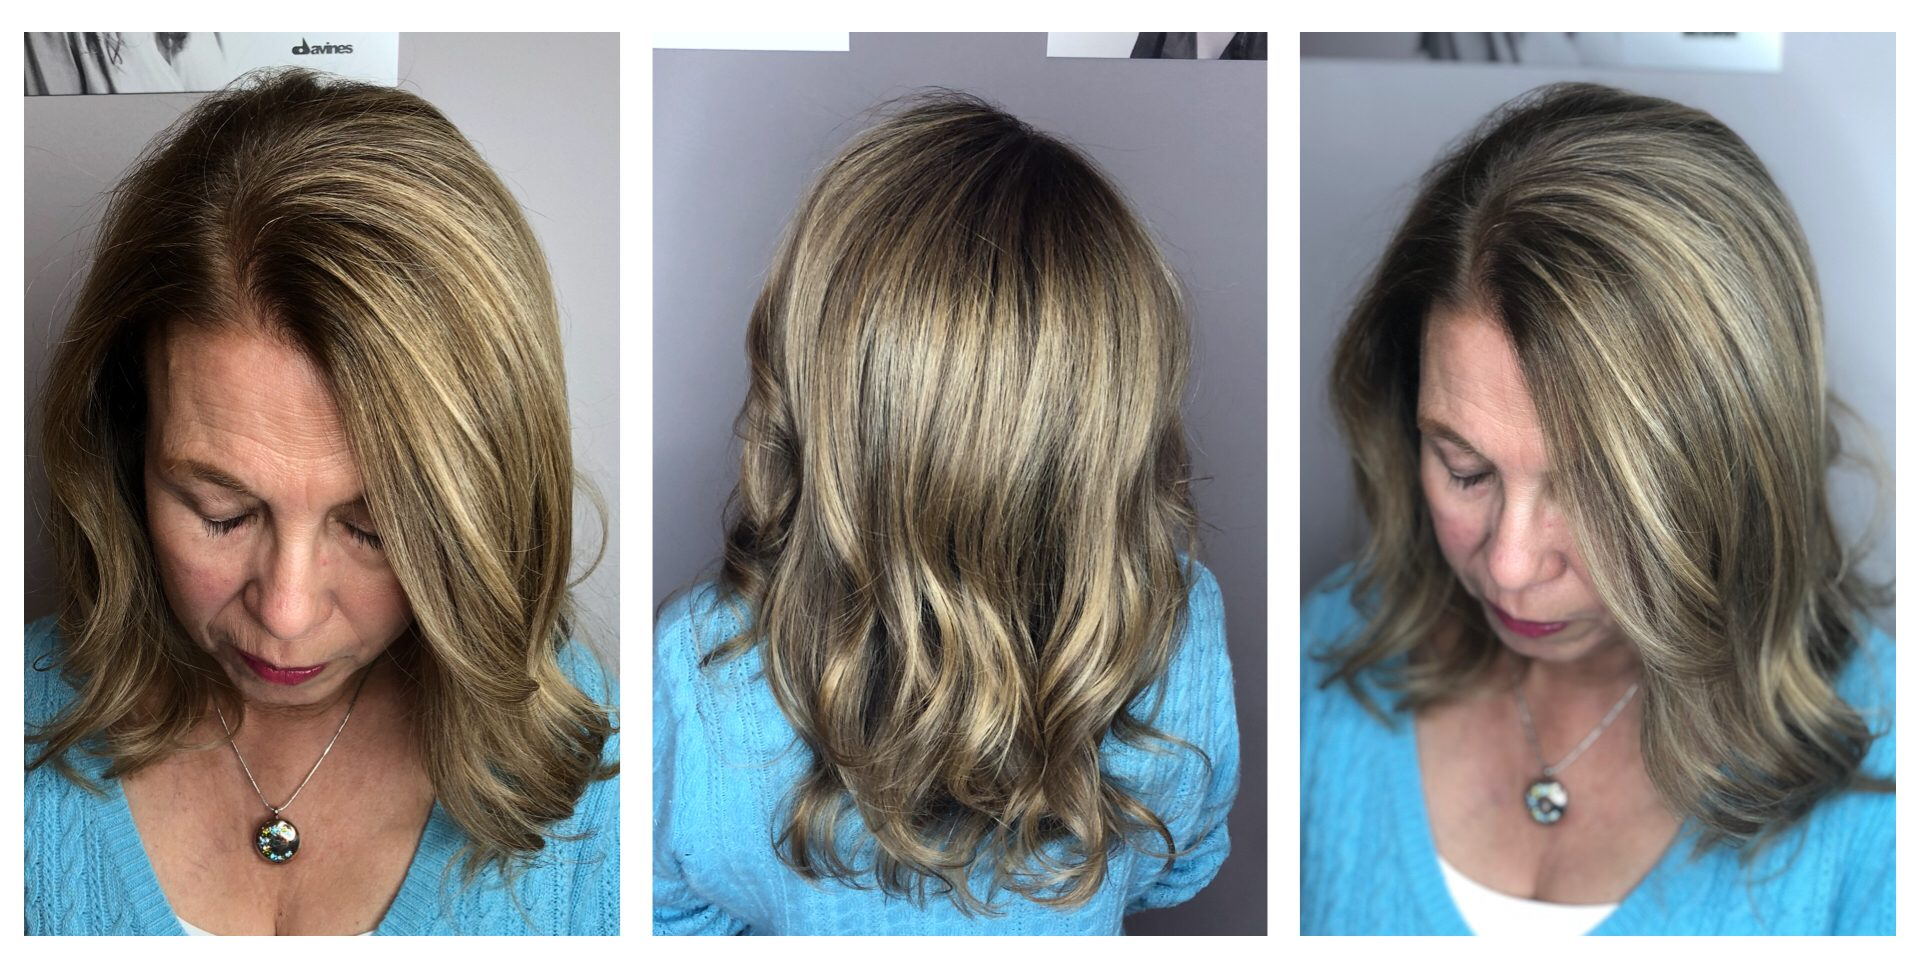 Image-1920x968 Before and After Hair Makeovers in Naples FL